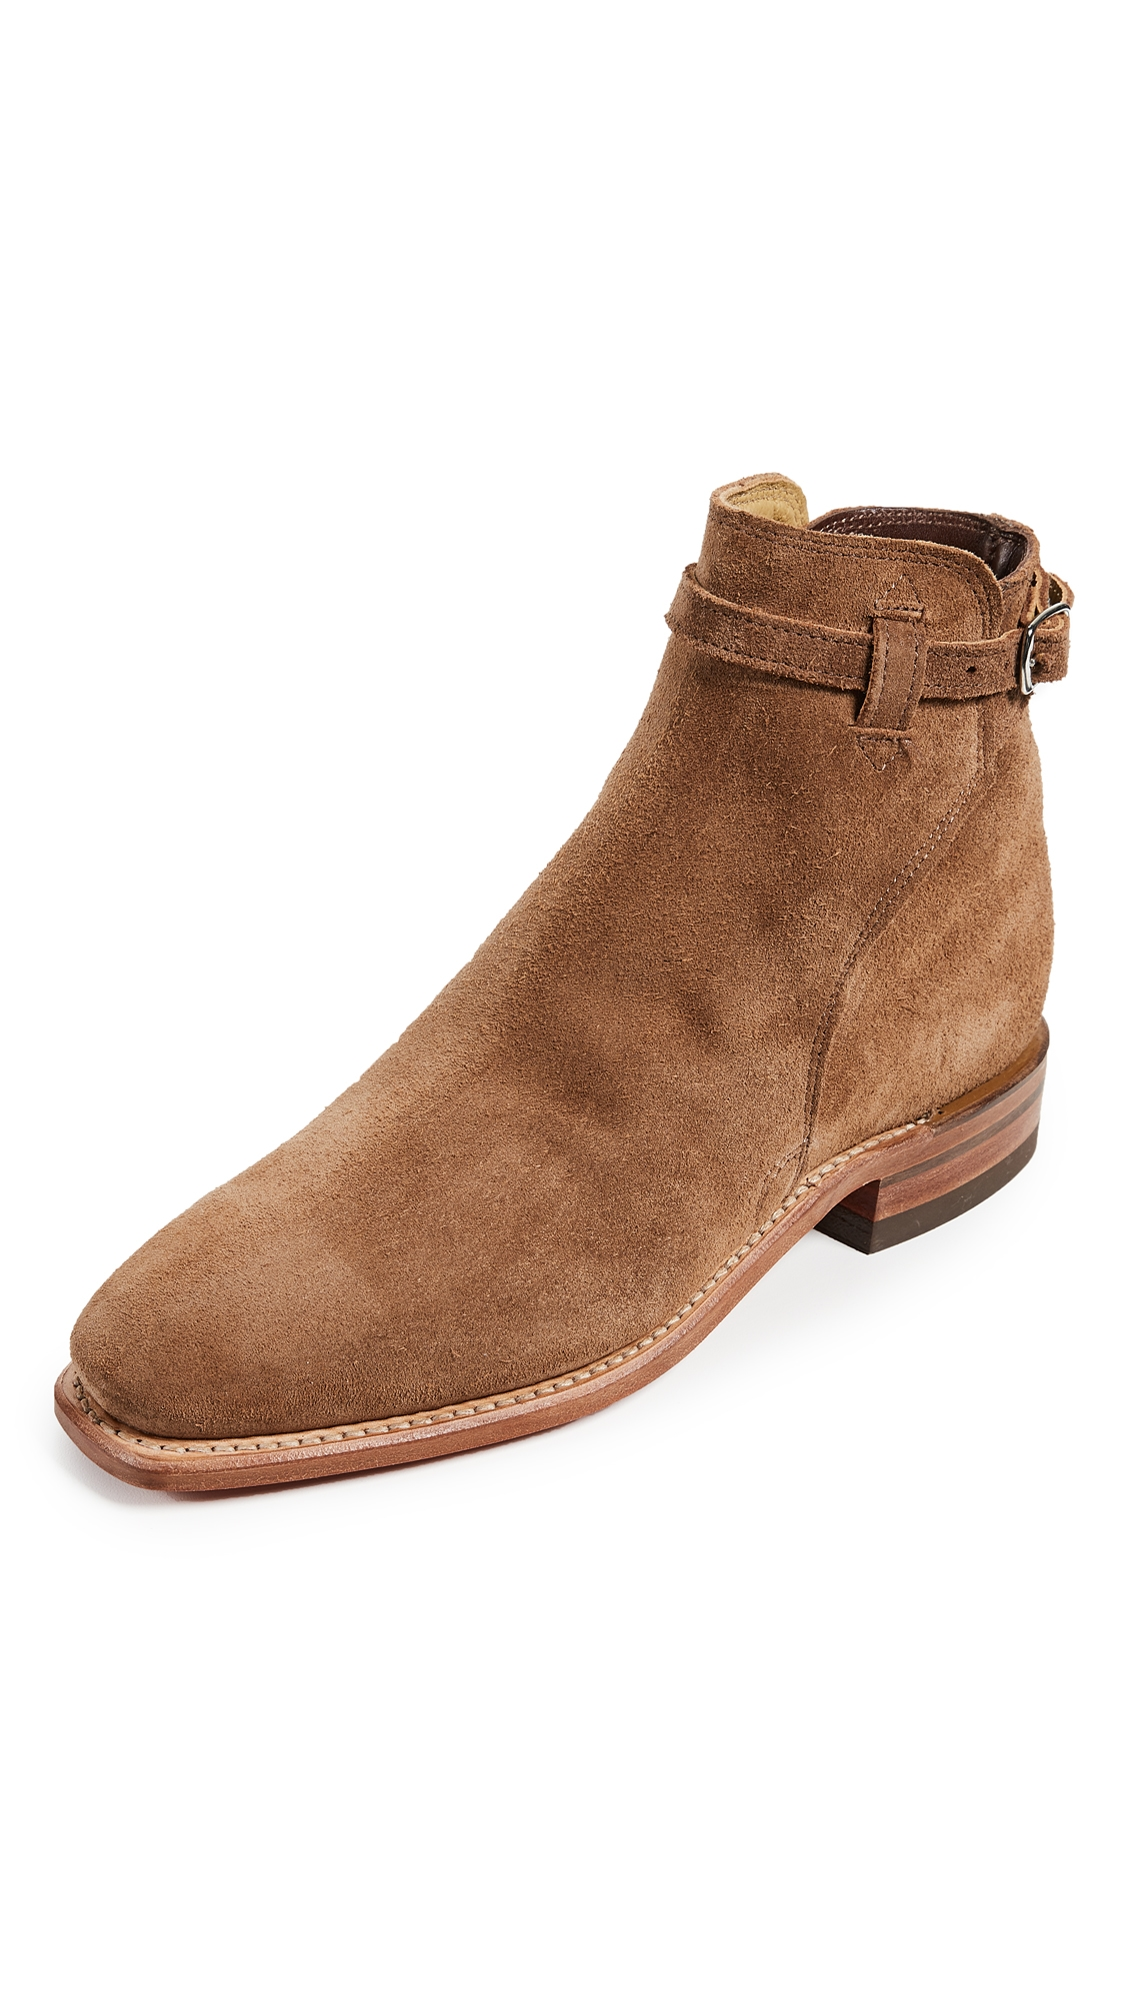 Flat Heel Boots - Saddle R.M. Williams CpRSIycH